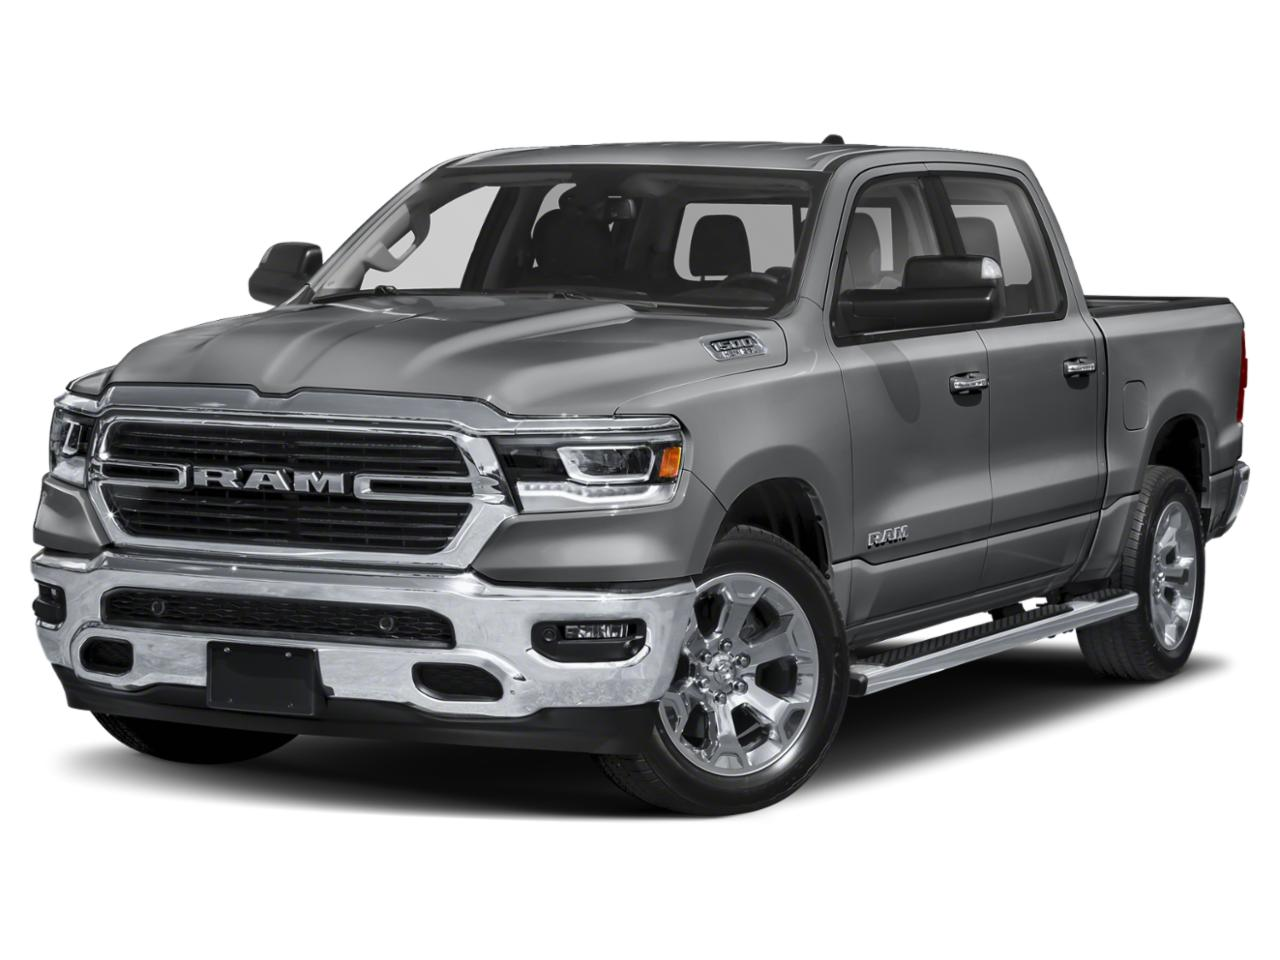 2019 Ram 1500 Vehicle Photo in Ocala, FL 34474